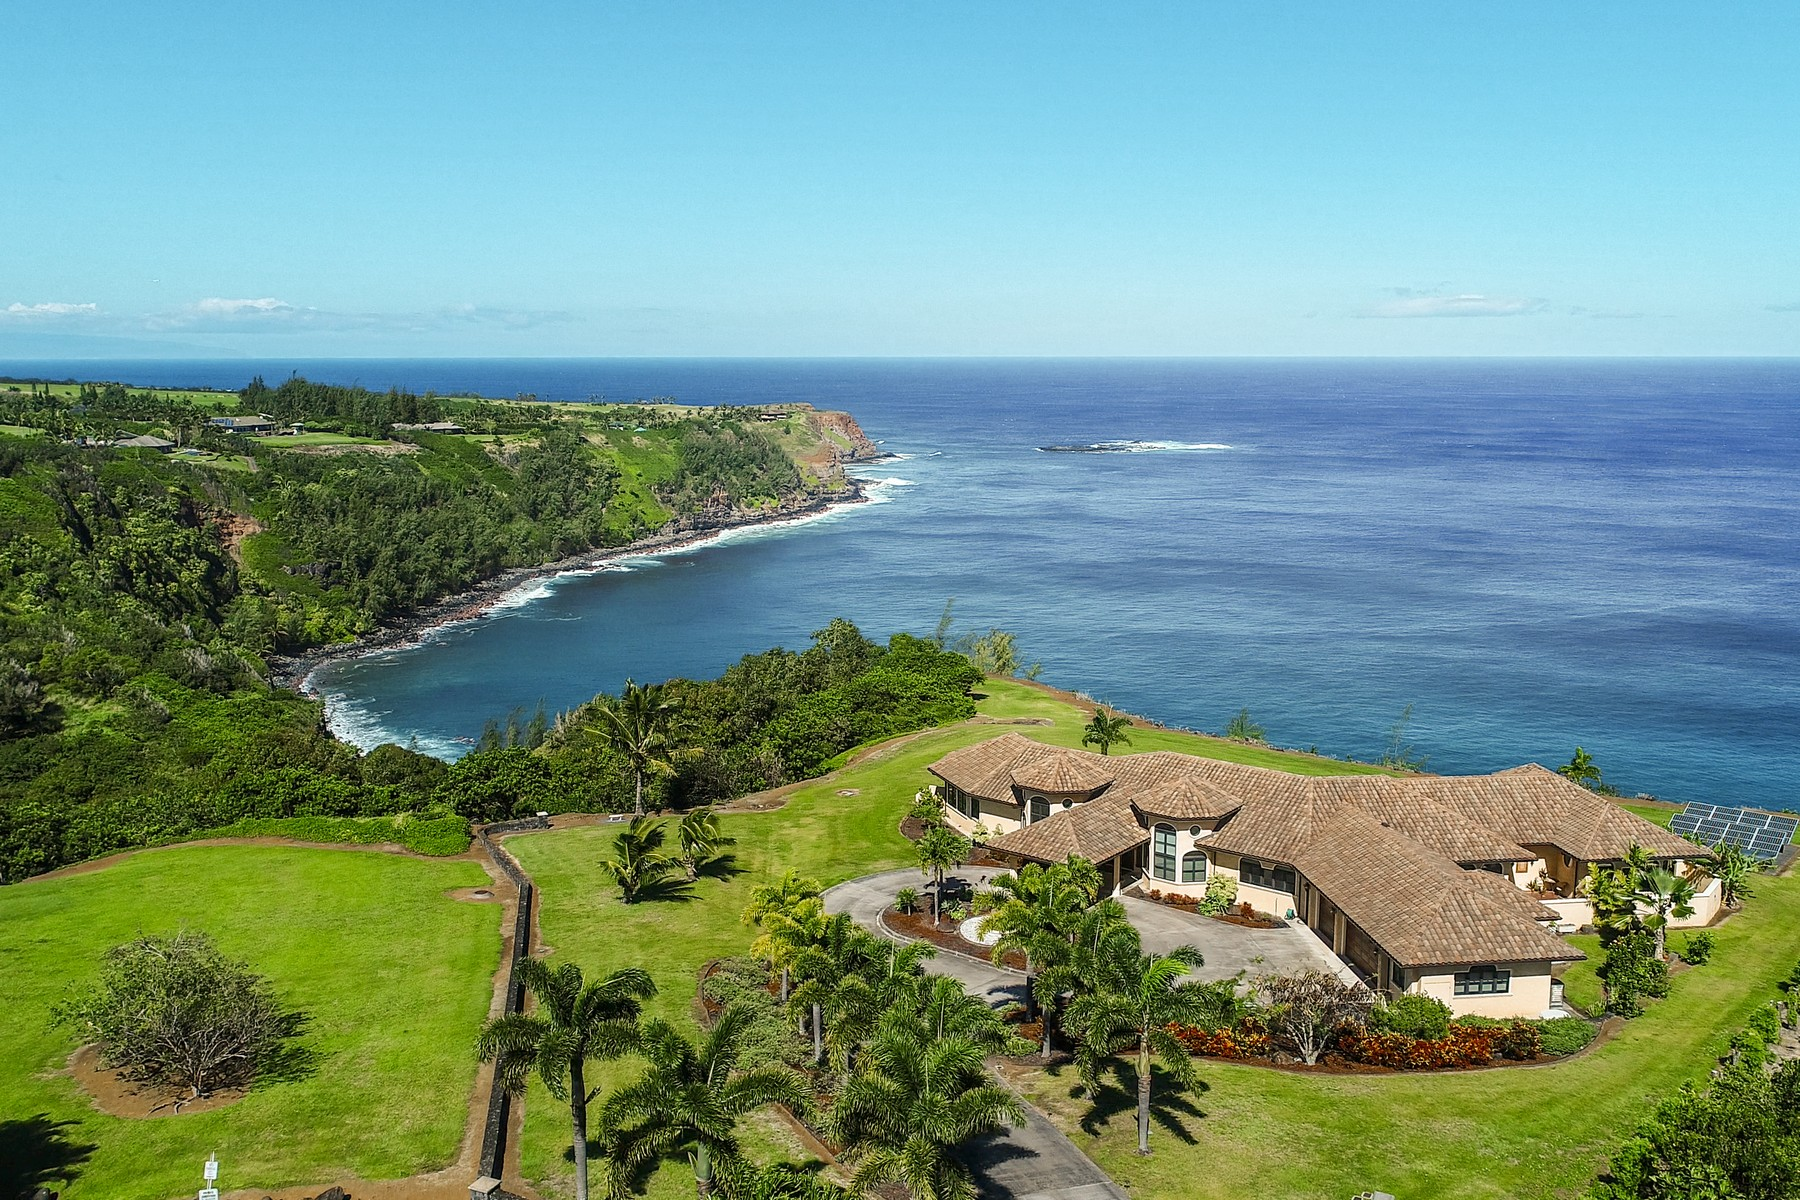 Villa per Vendita alle ore Premier Oceanfront Haiku Haven 80 Hale Pili Way Haiku, Hawaii 96708 Stati Uniti